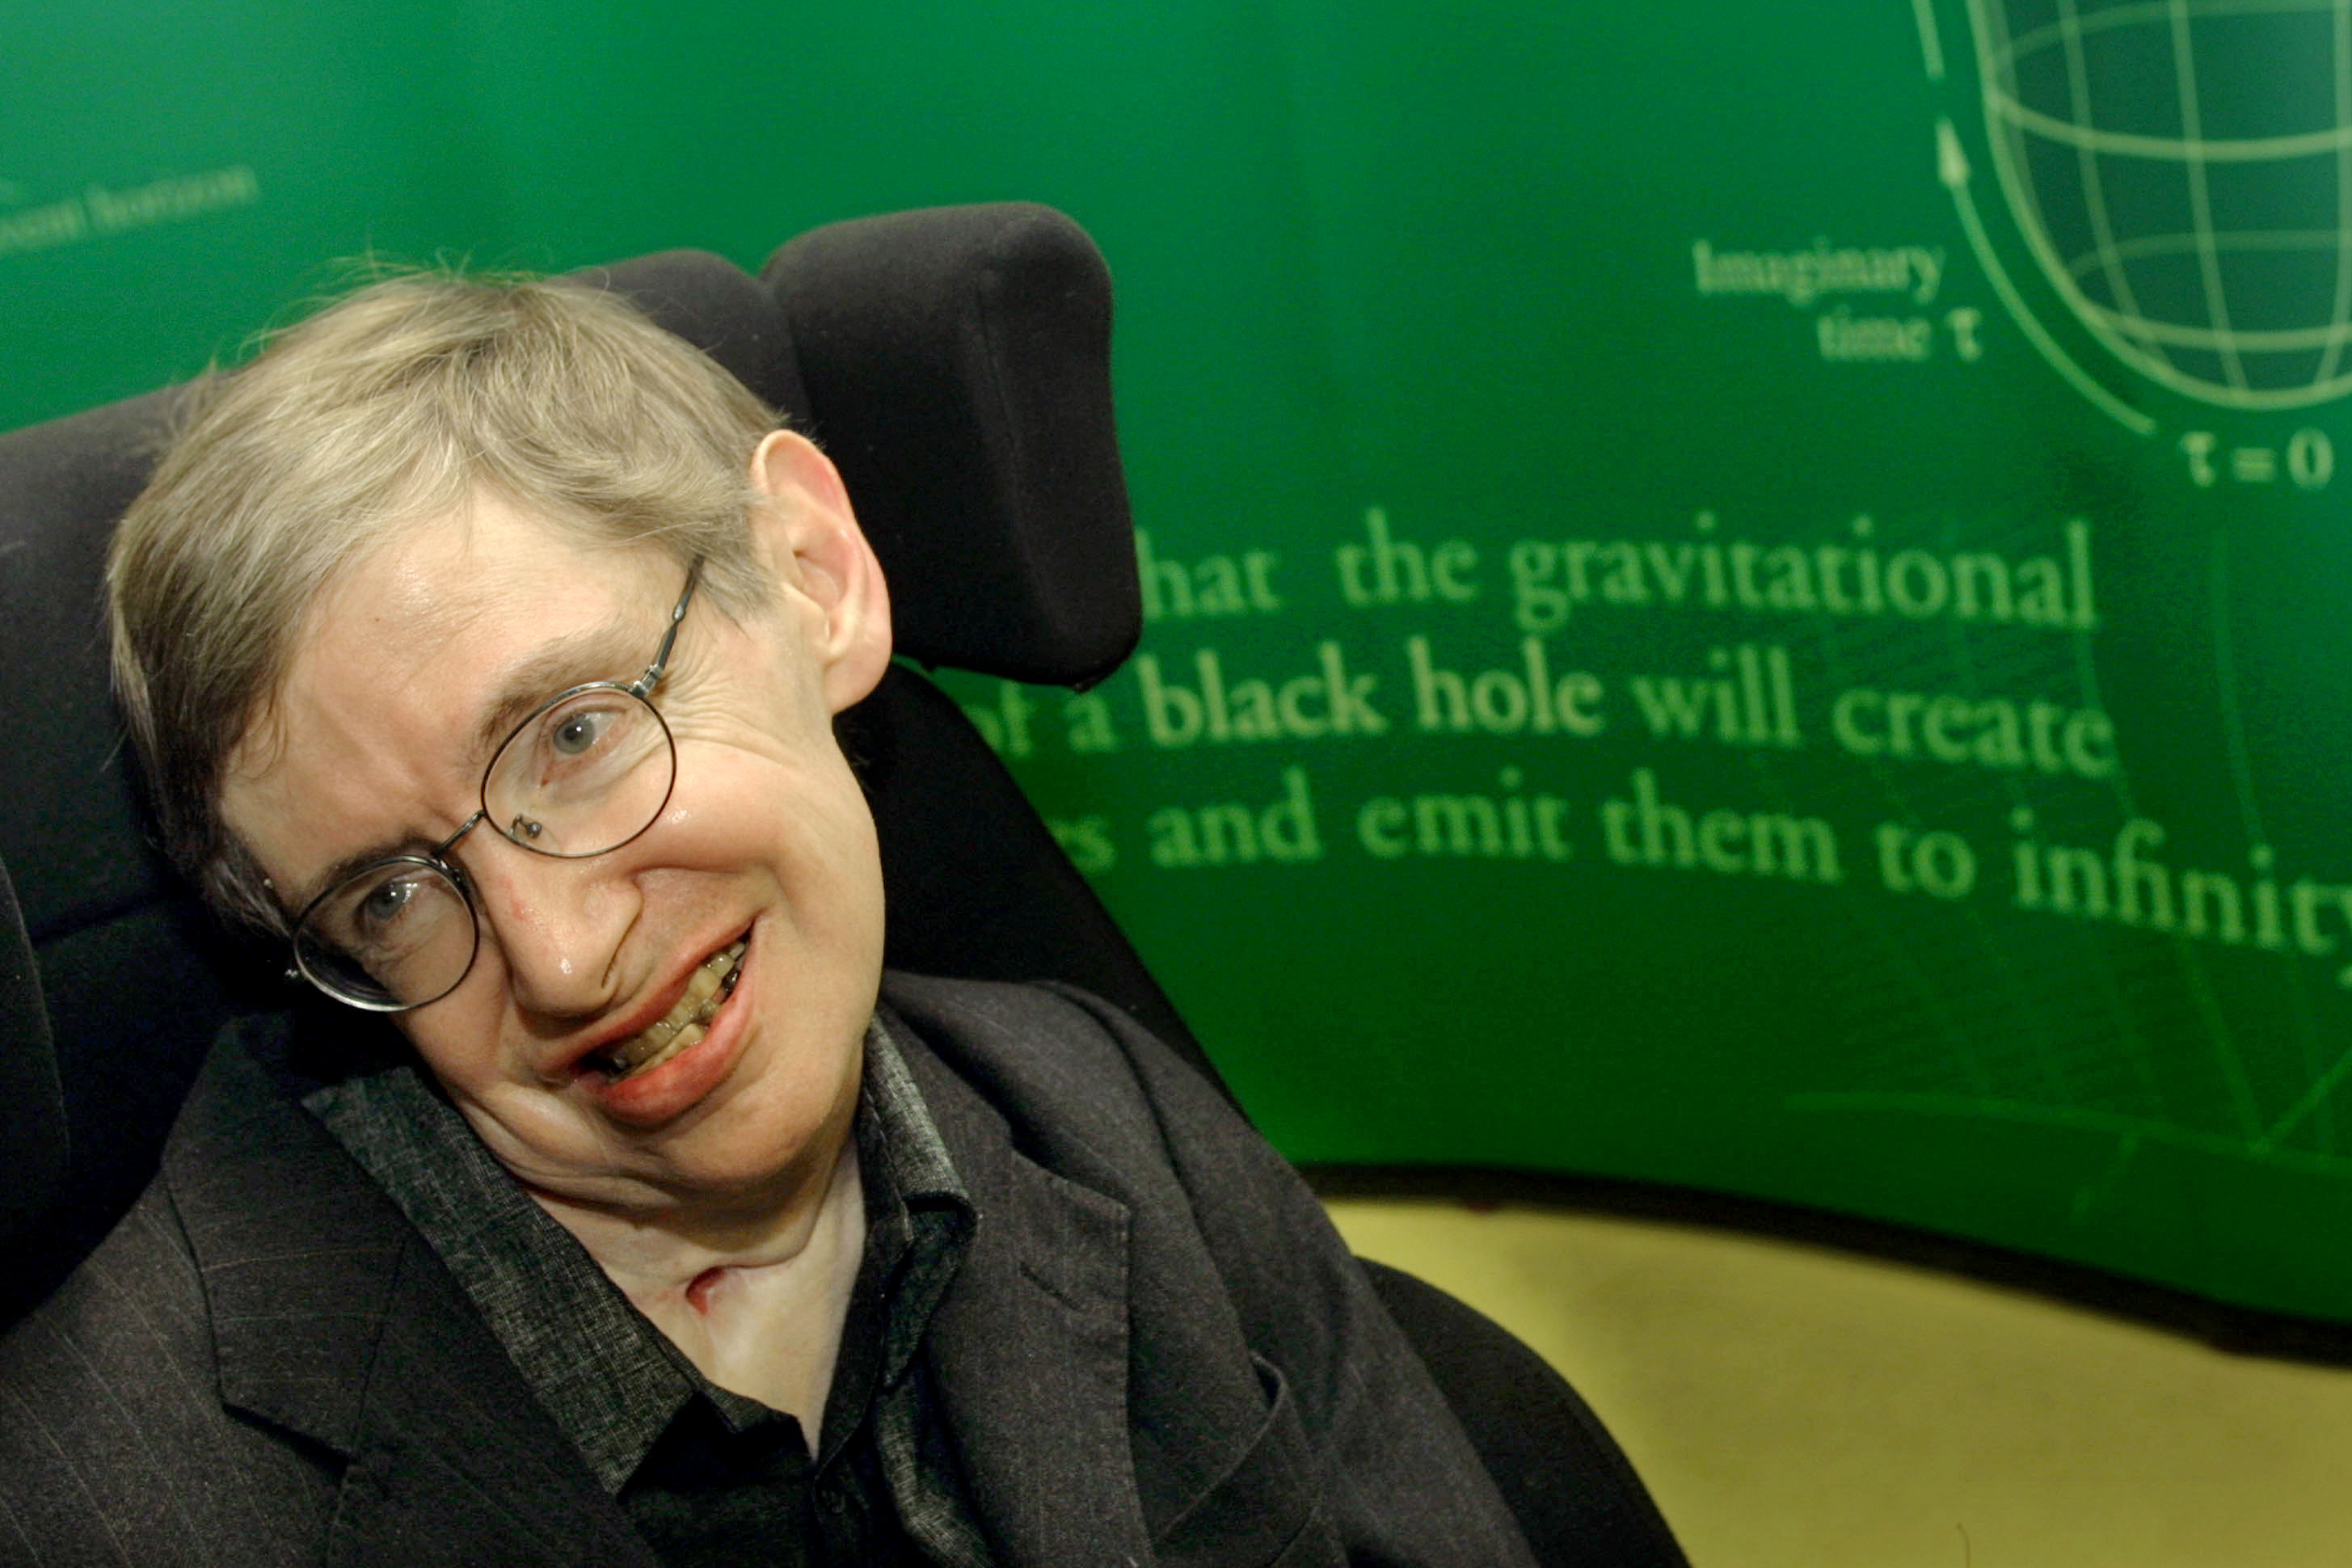 Stephen Hawking has died